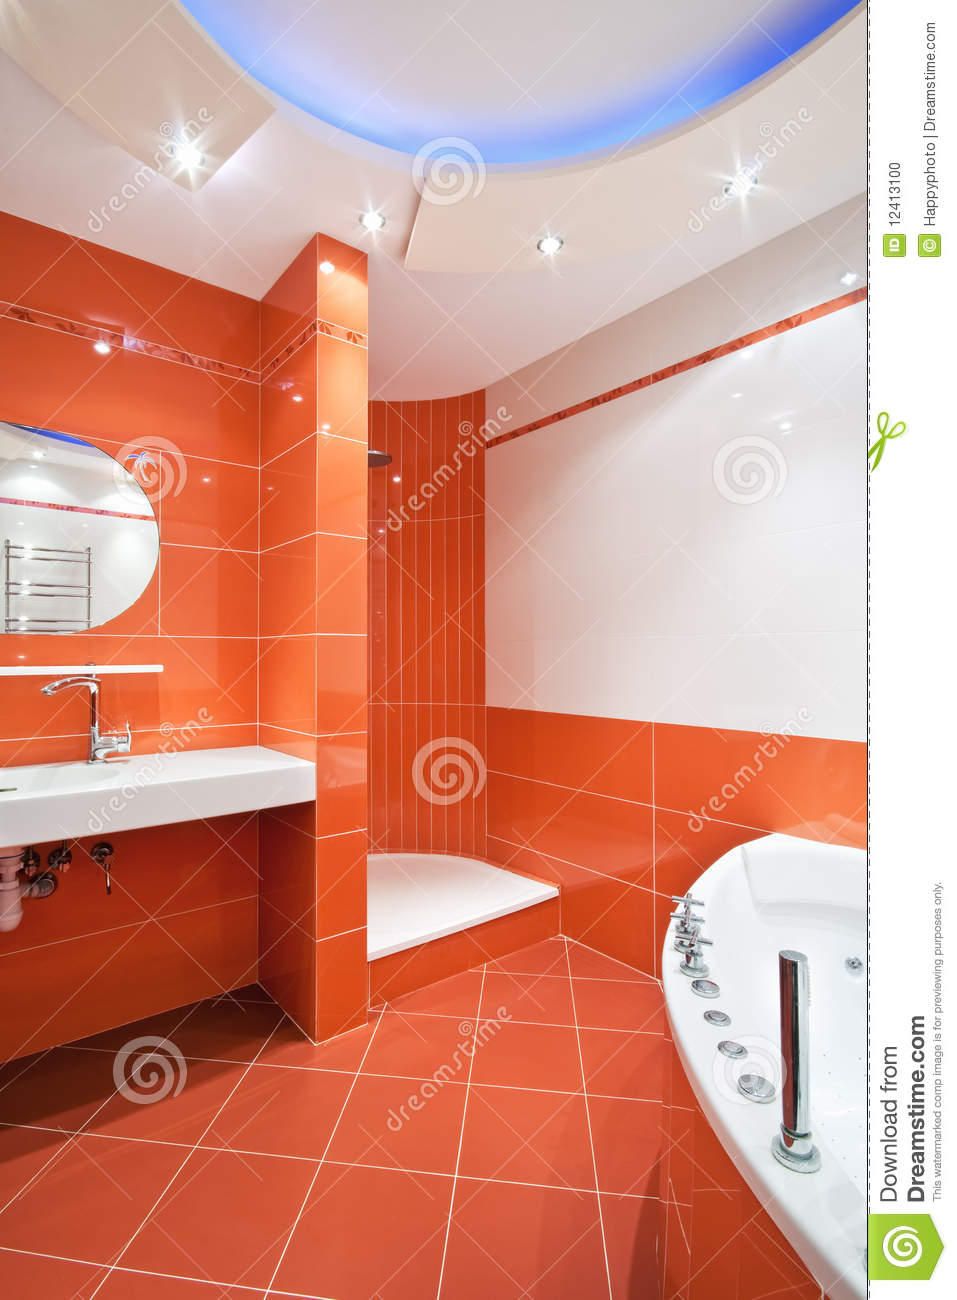 Bathroom In Orange And White Colors Stock Photo Image